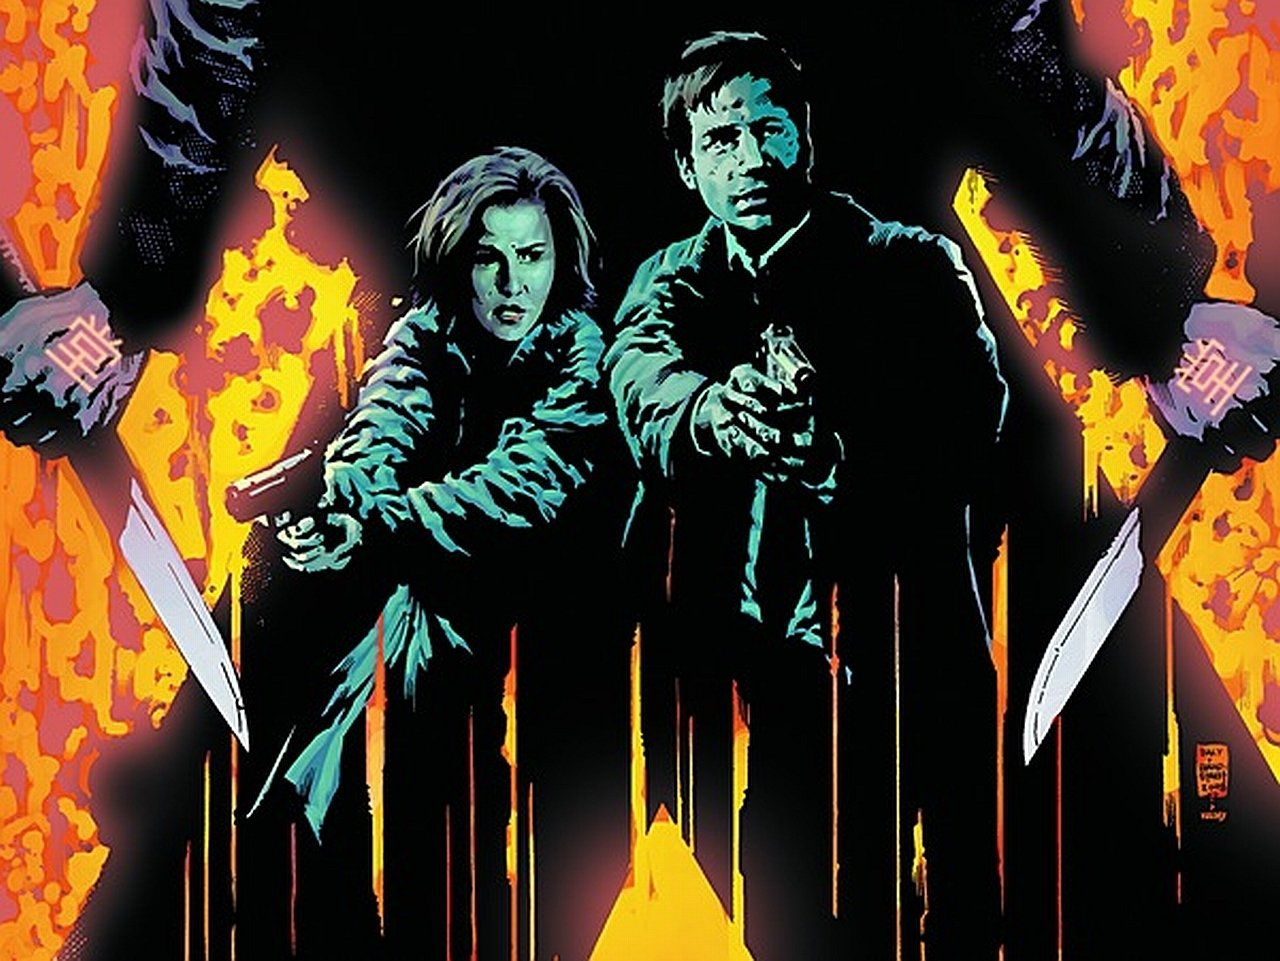 X Files Wallpaper and Background Image 1280x961 ID181846 1280x961